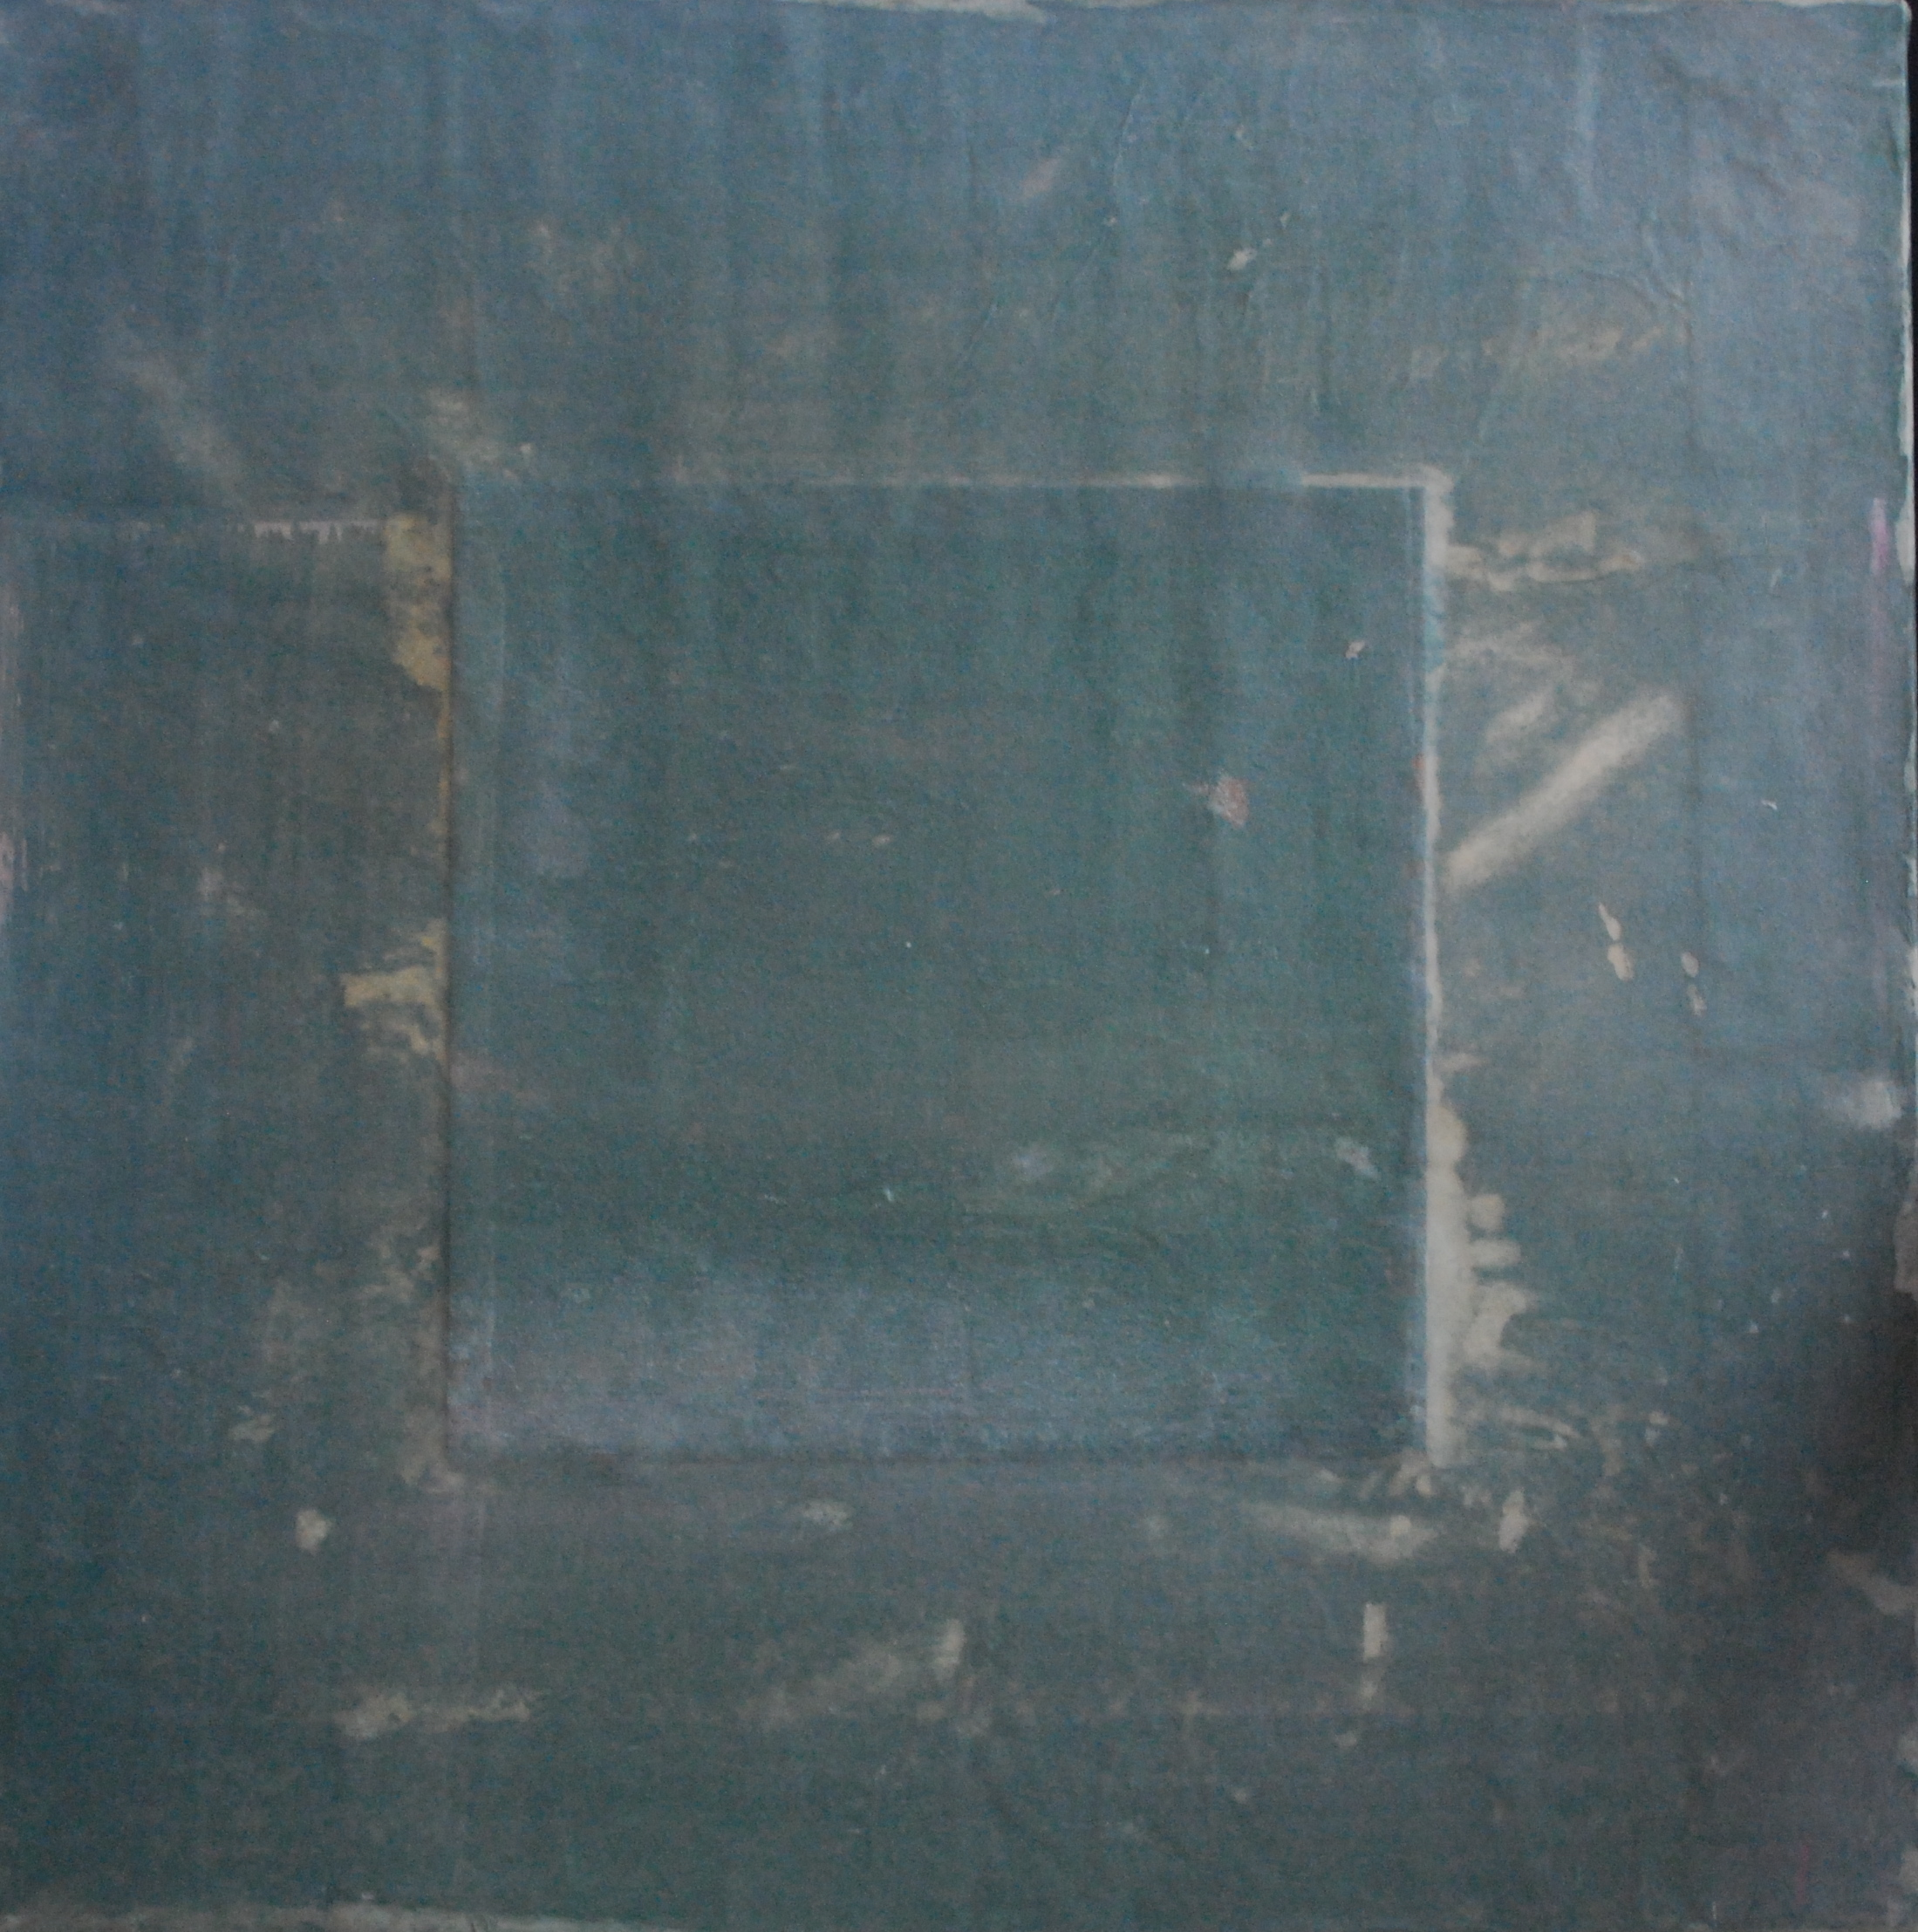 SoHyun Bae, Bojagi #1, 2003, pure pigment, rice-paper on sand-paper on canvas, 18 x 18 inches